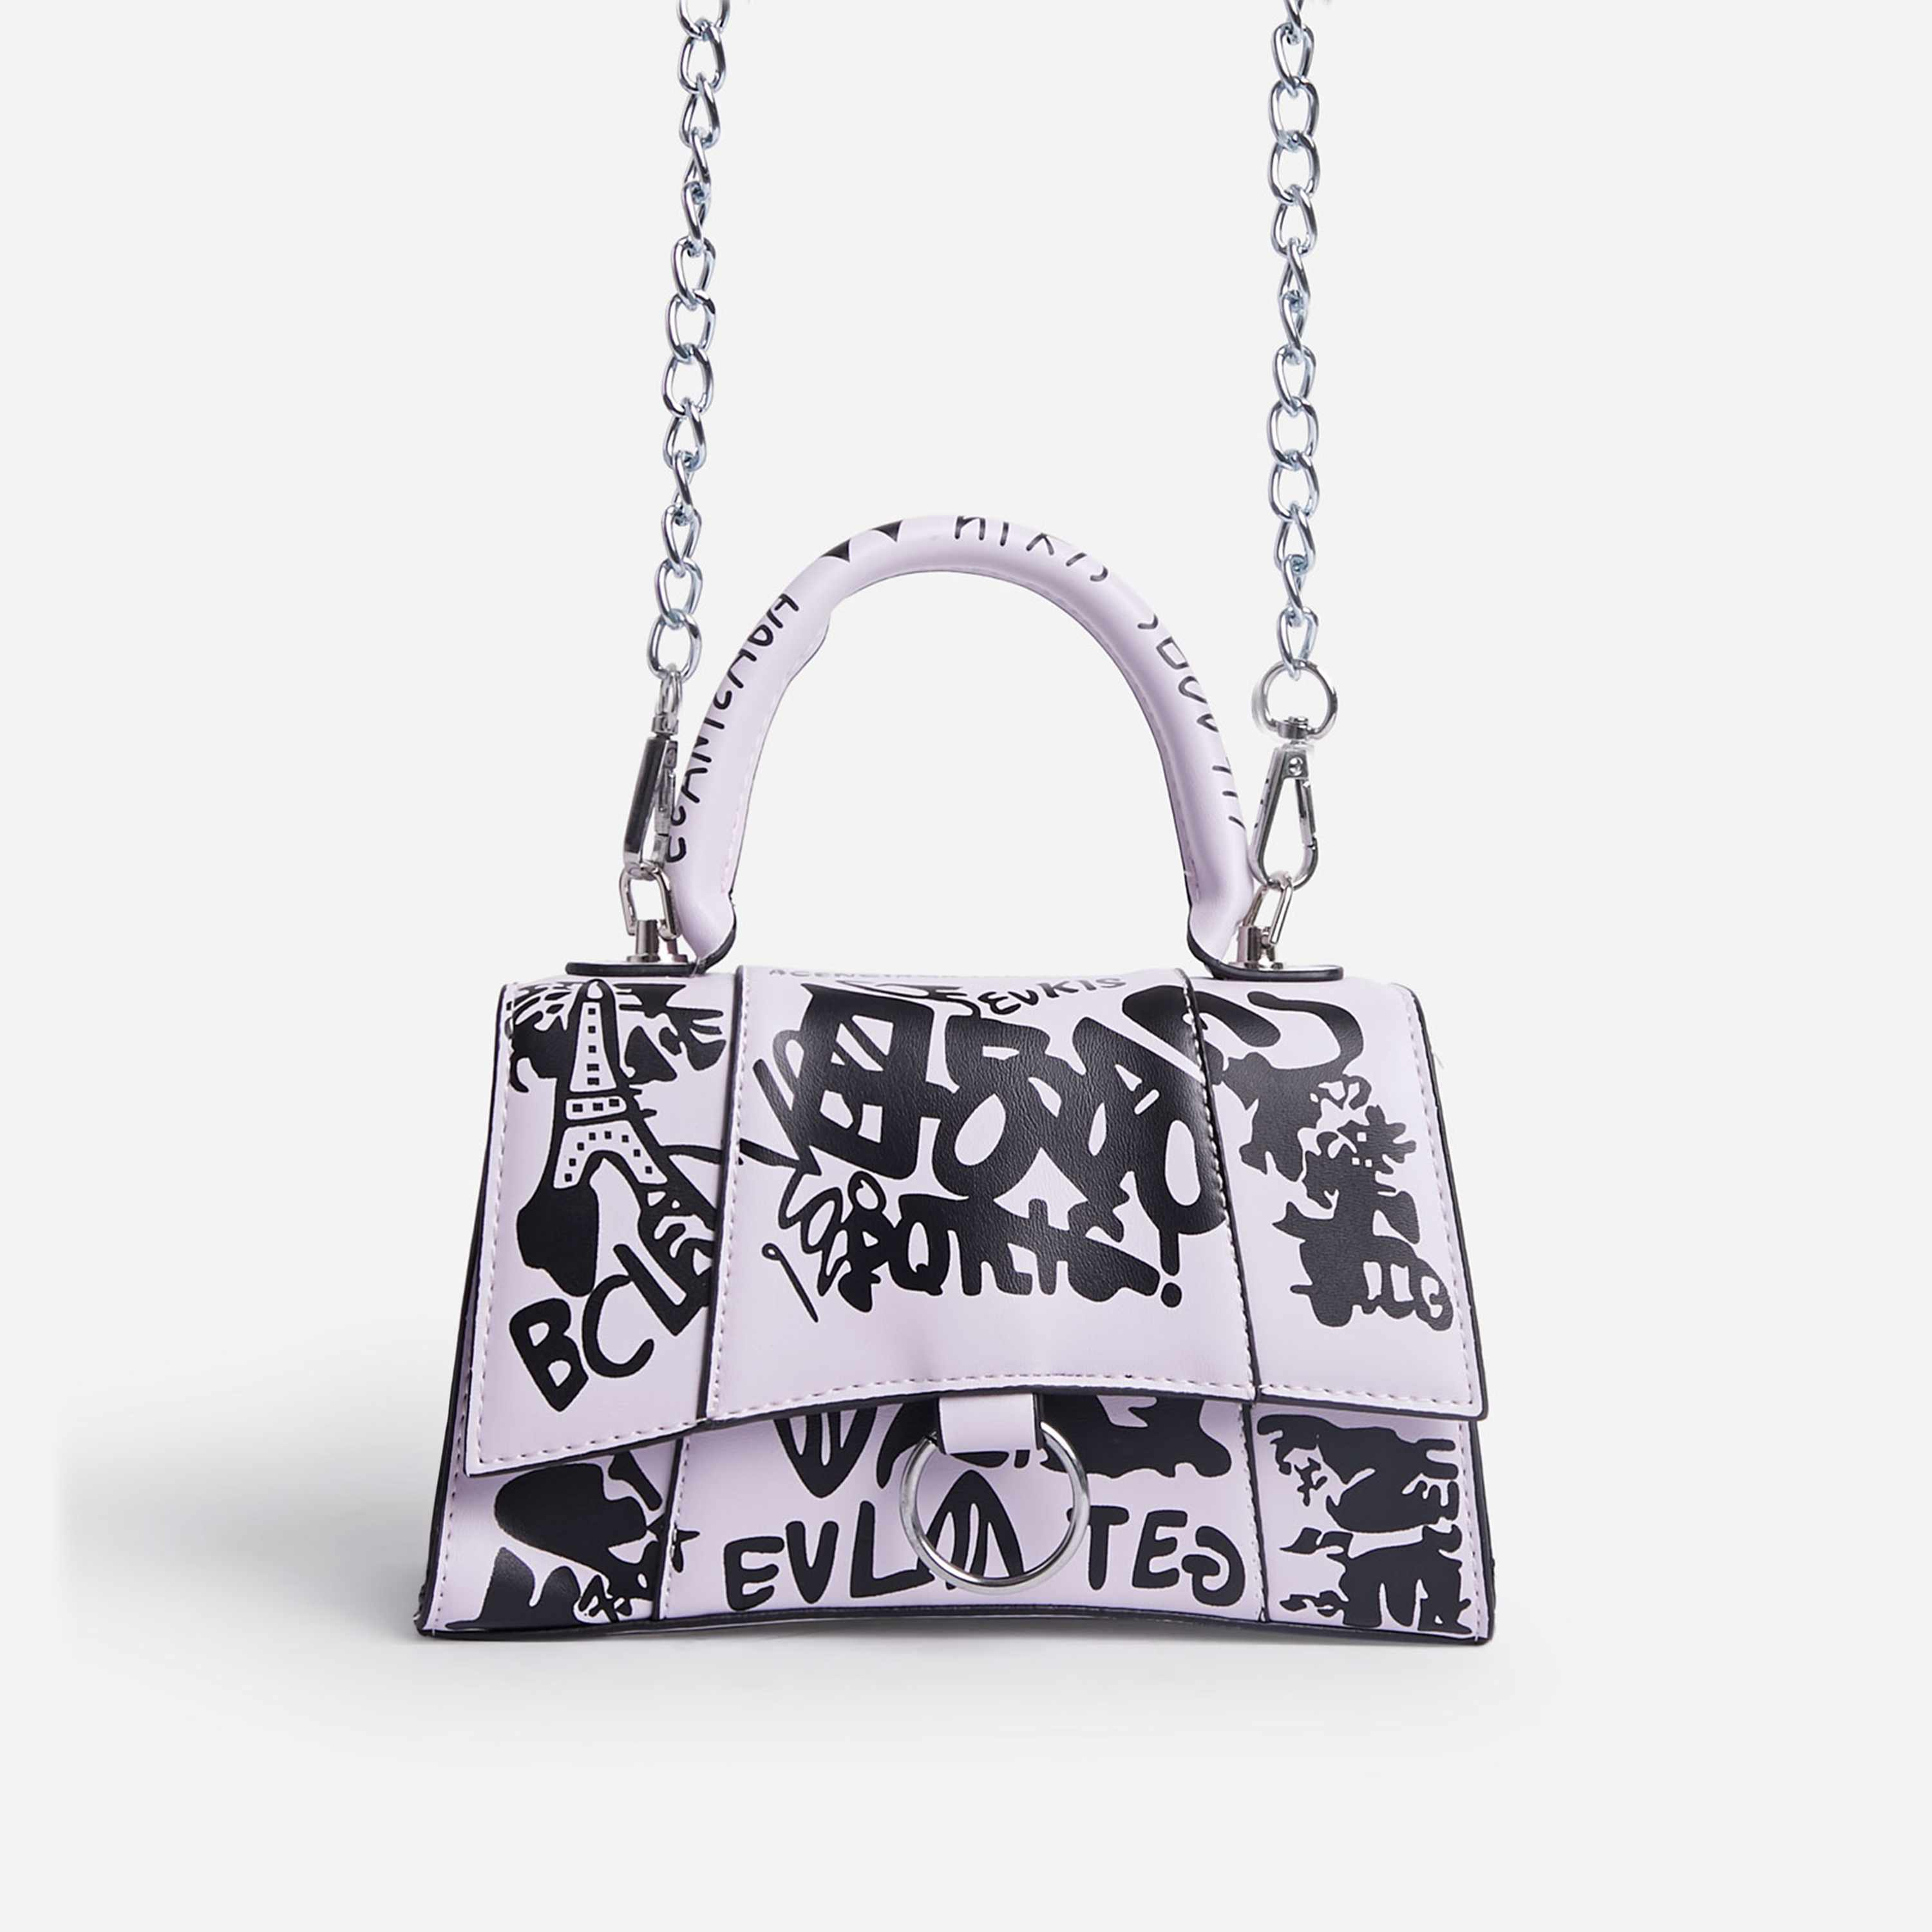 Scribble Chain Detail Graffiti Handbag In Pink Faux Leather